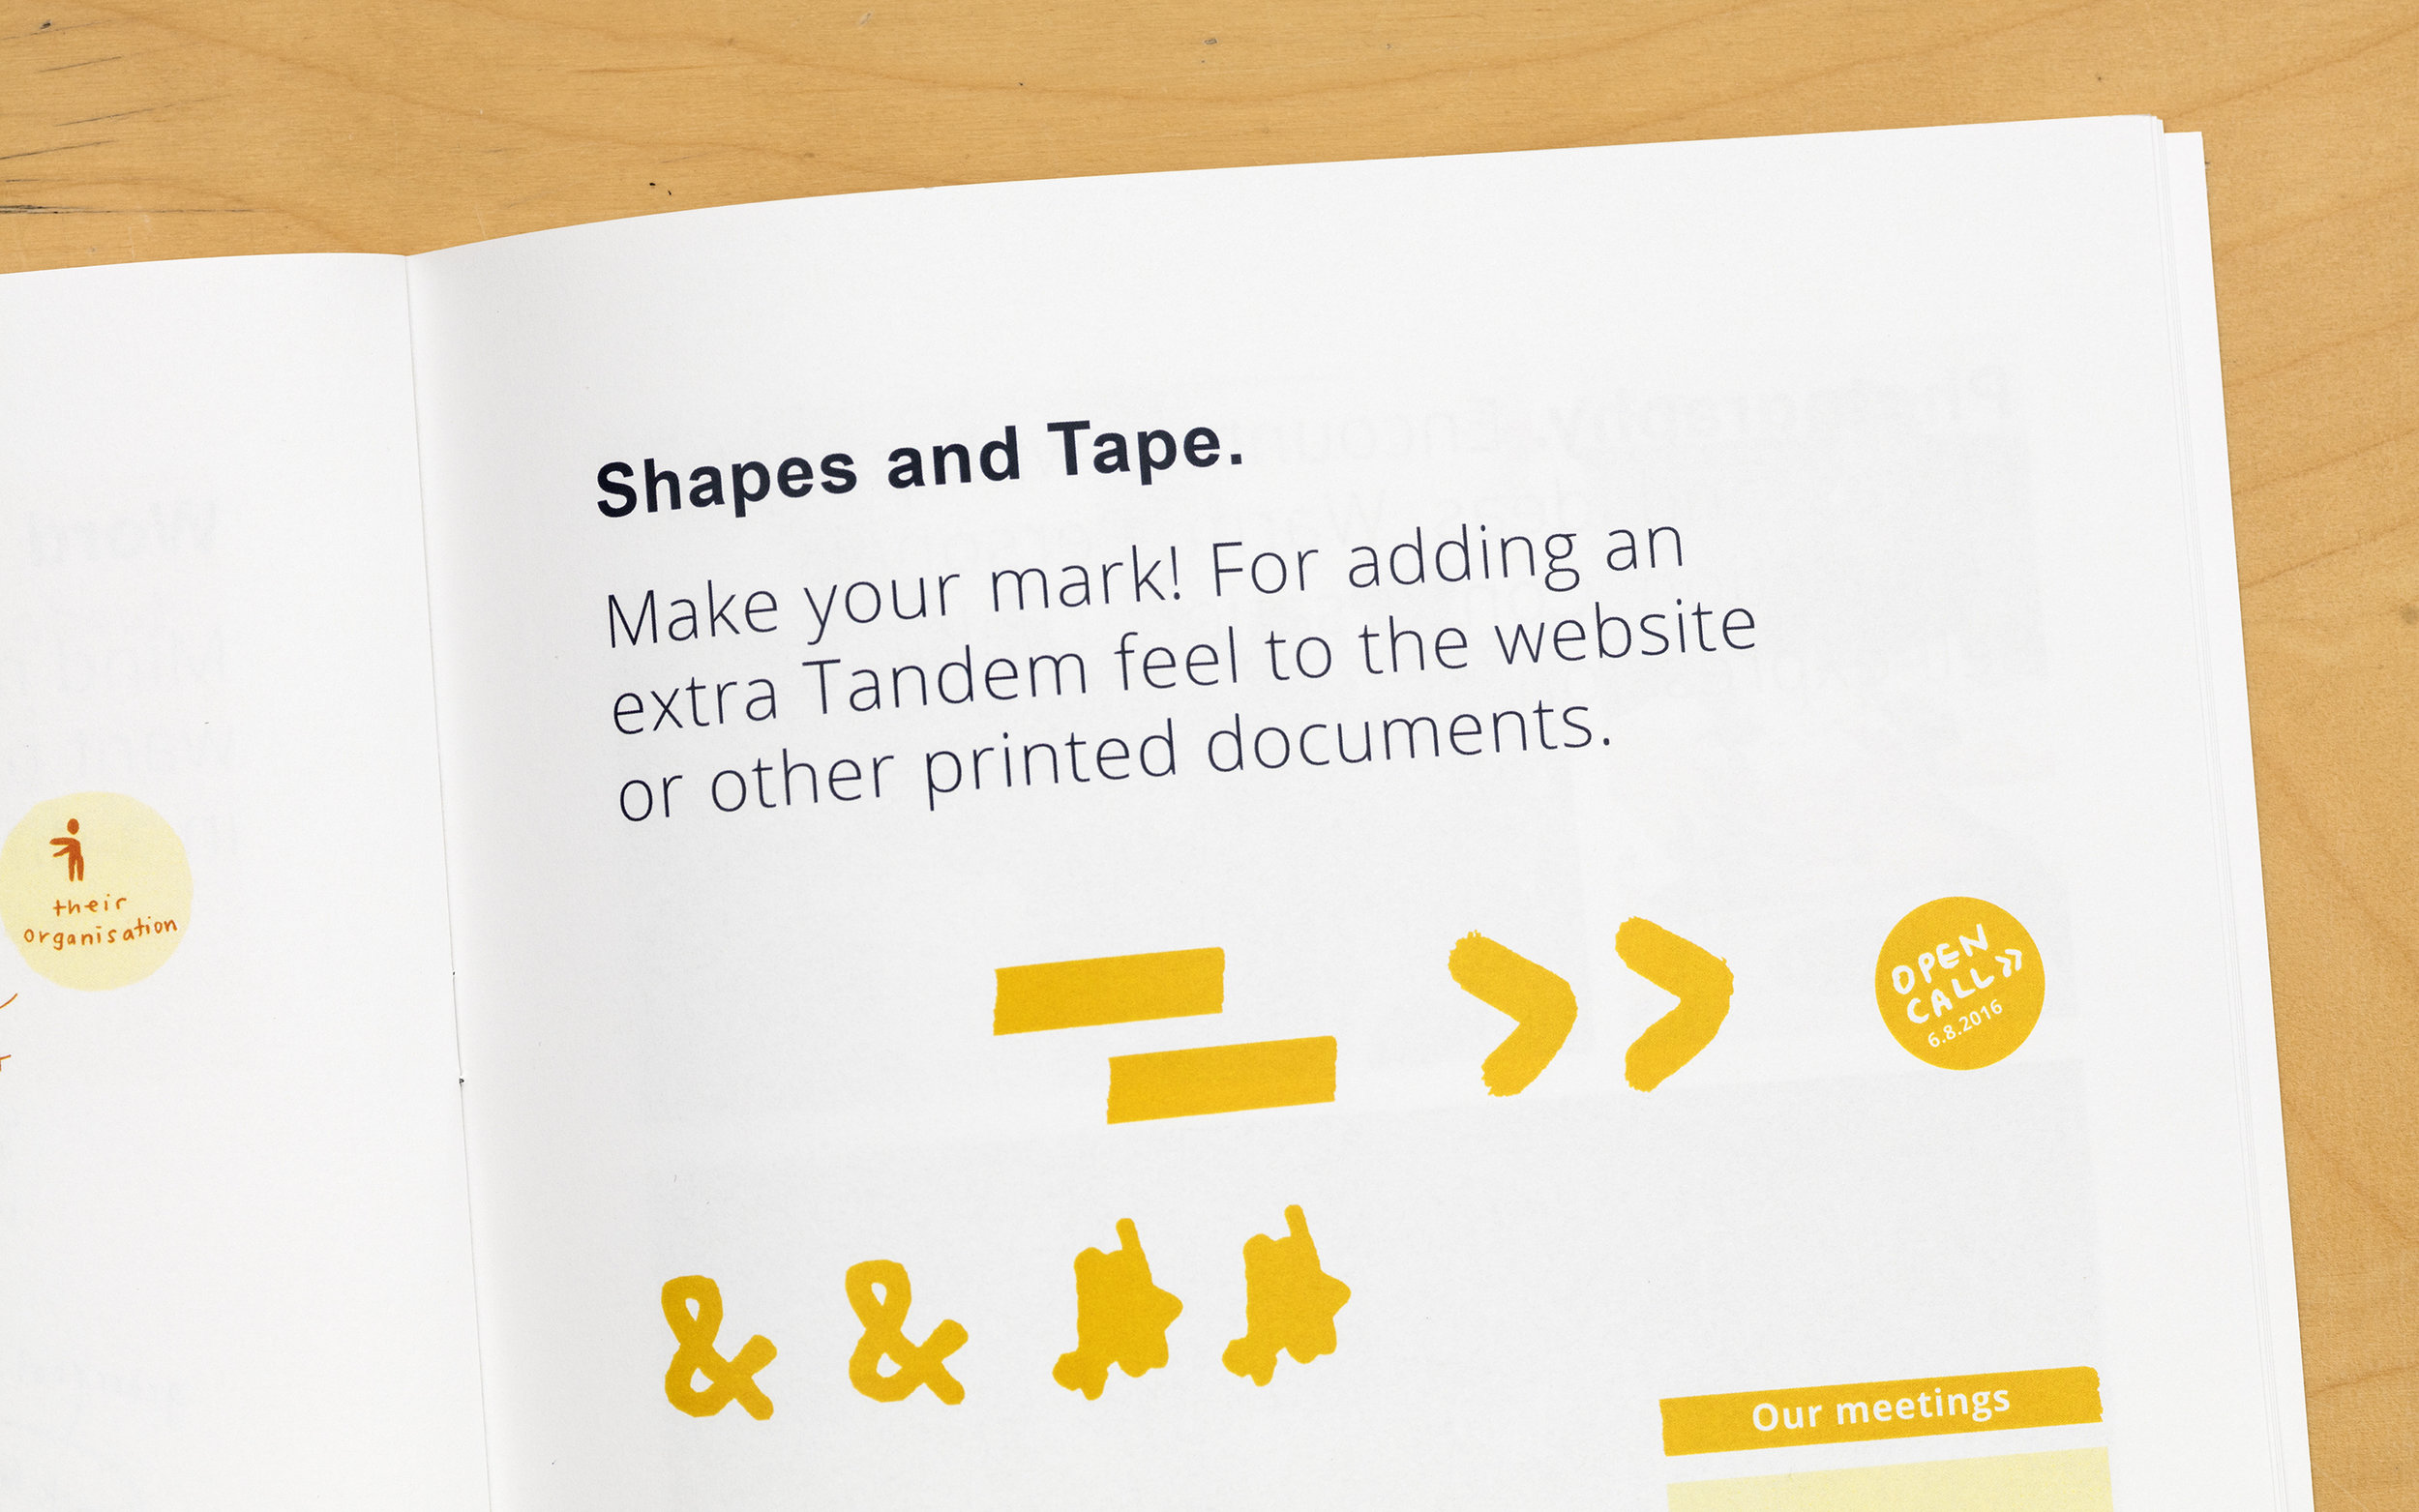 Implementation - We designed tools based on Tandem's new visual identity, including a booklet about the Tandem process, infographics, and postcards. Our last phase was gathering additional feedback and making adjustments.